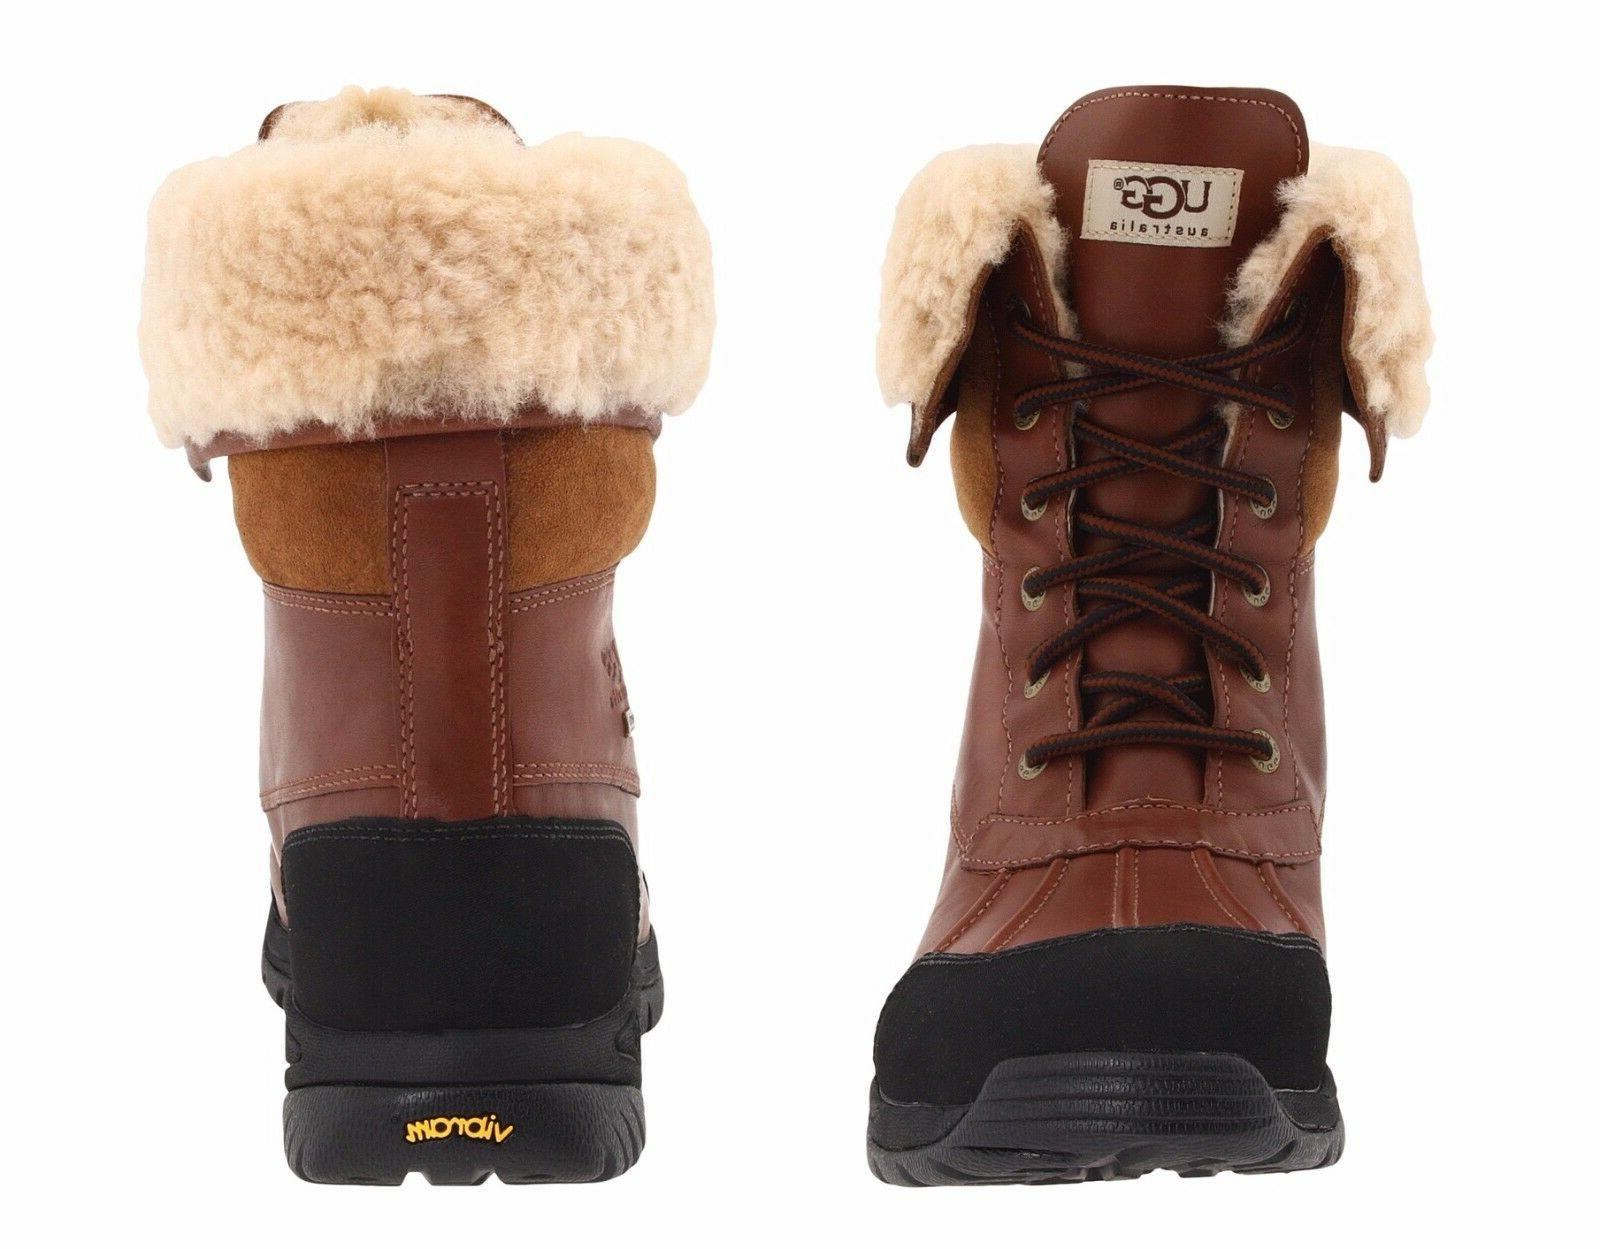 Authentic Winter Waterproof Ski Shoes